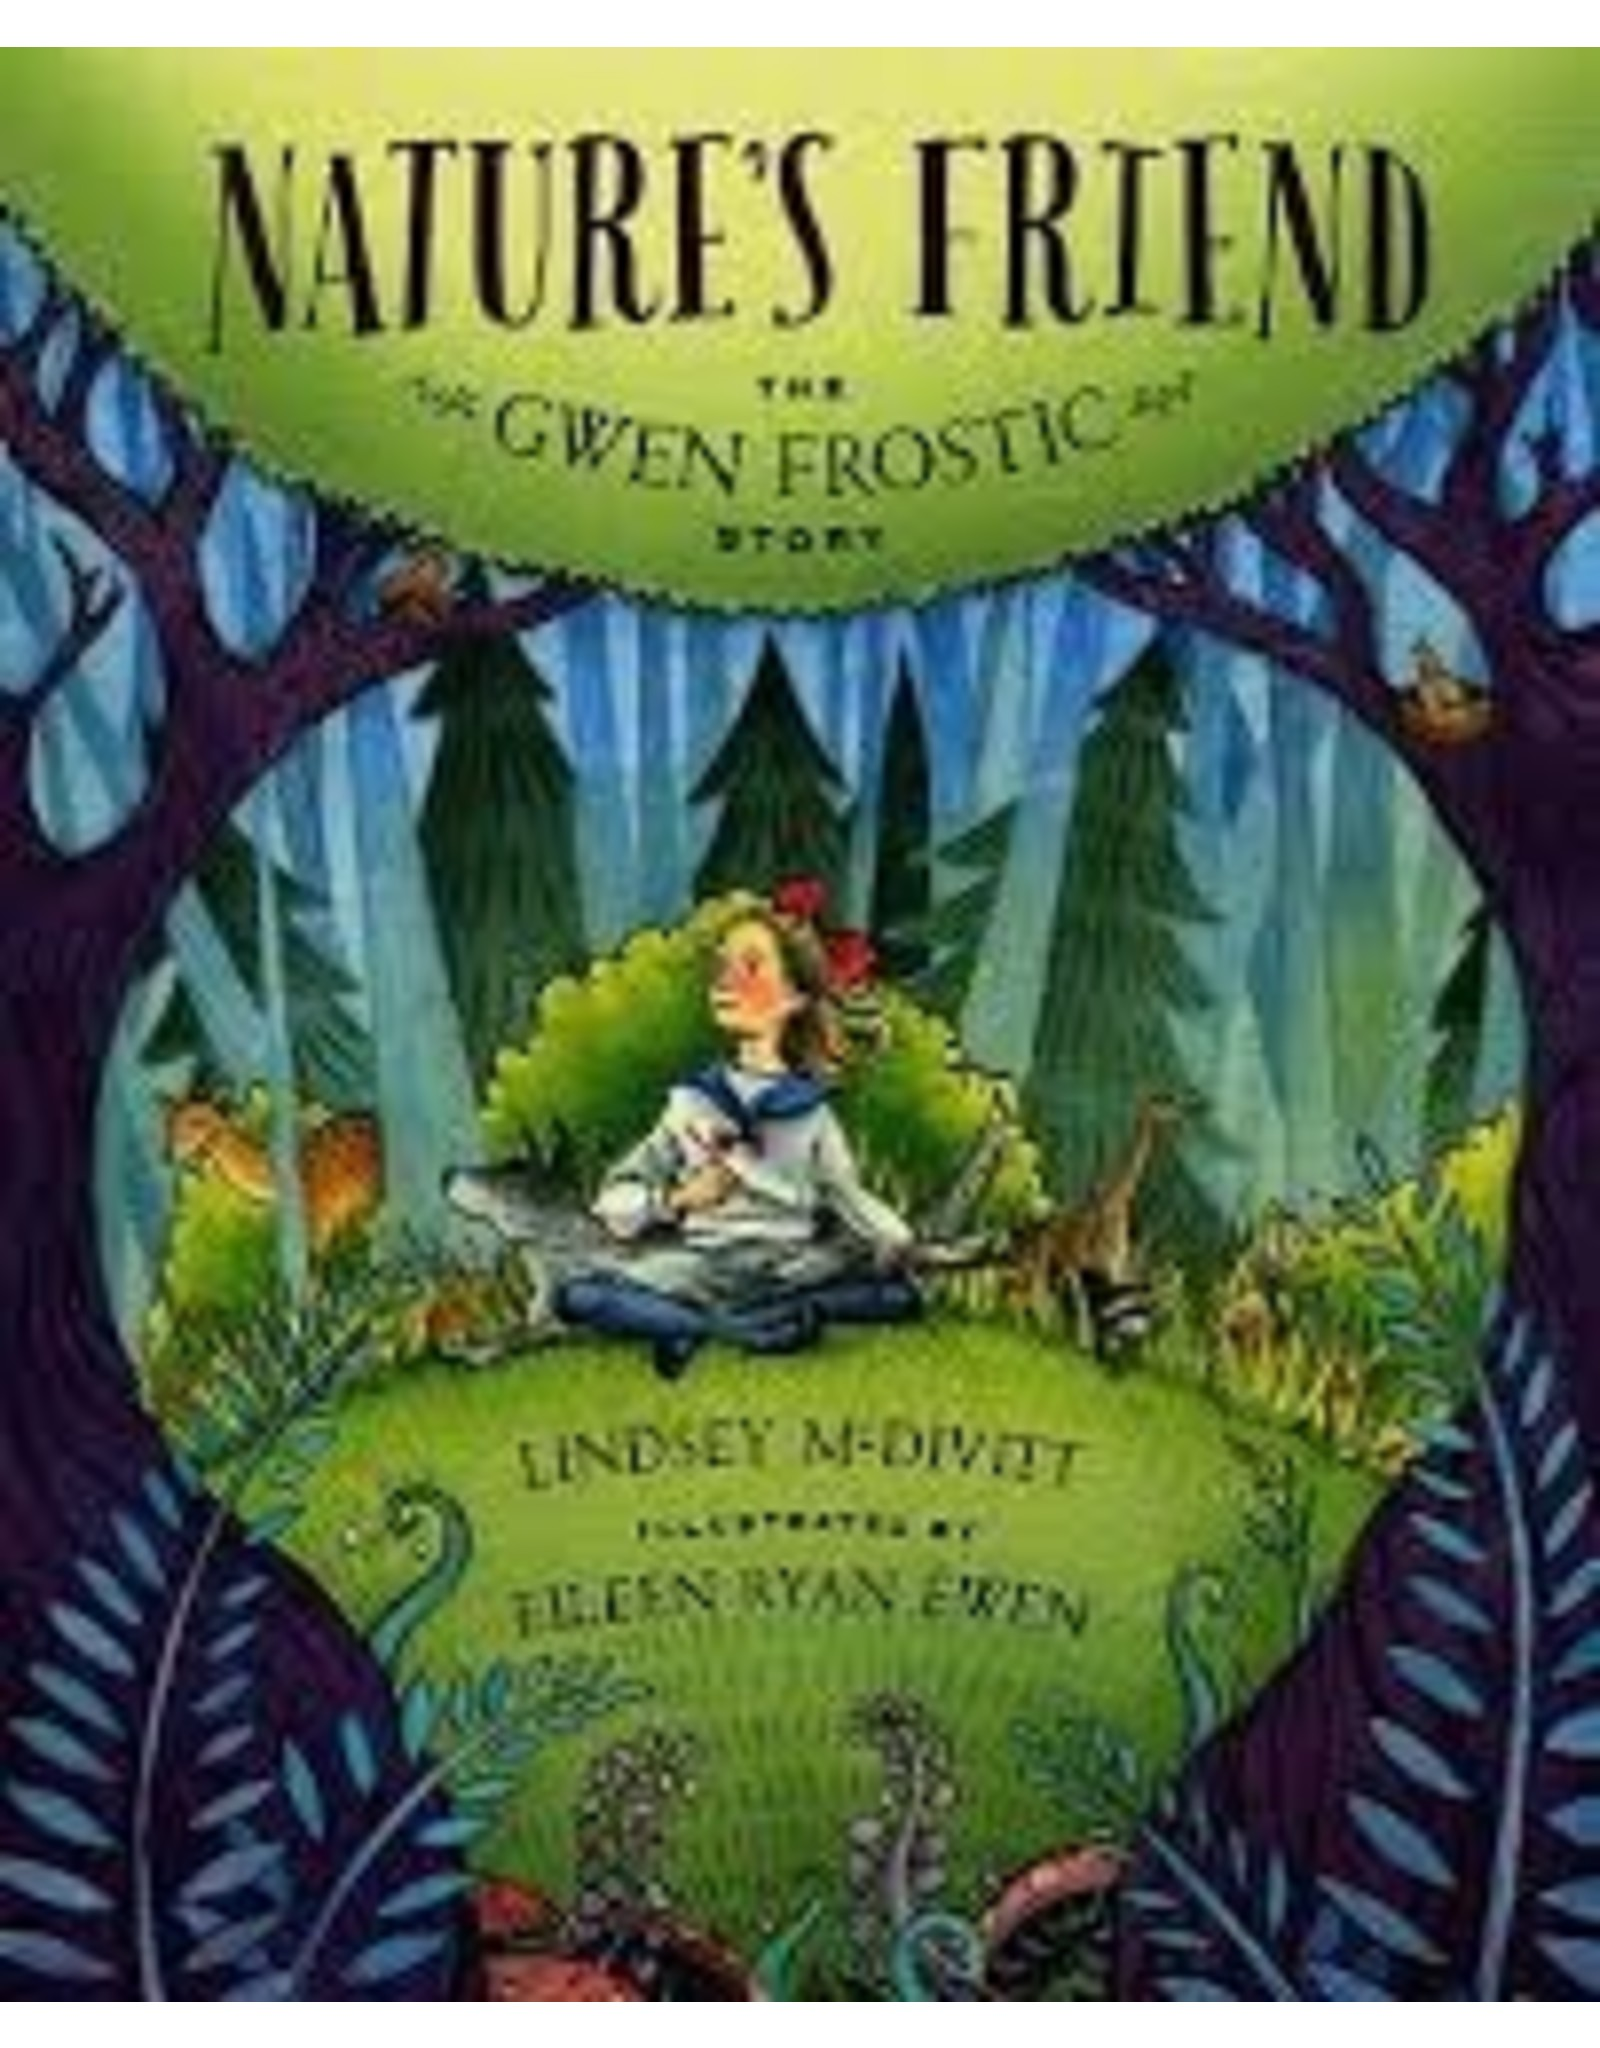 Books Natures Friend : The Gwen Frostic Story by Lindsey McDivitt  & Illstrated by Eileen Ryan Ewen (DWS)